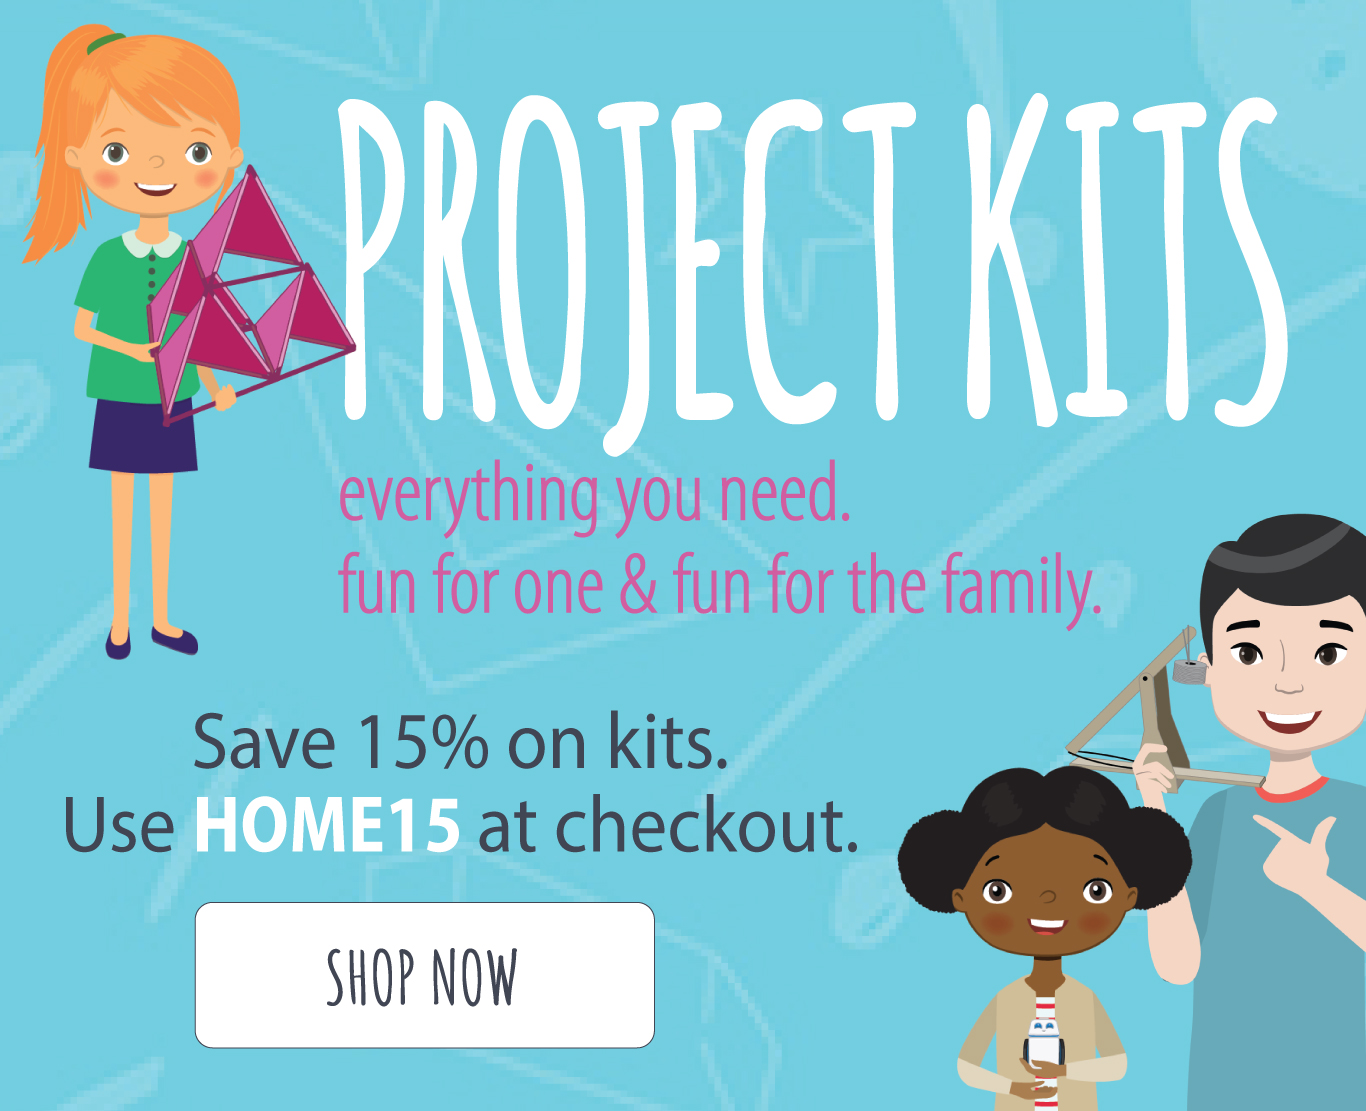 PROJECT KITS - Everything you need. Fun for one & fun for the family. Save 15% off kits. Use HOME15 at checkout.